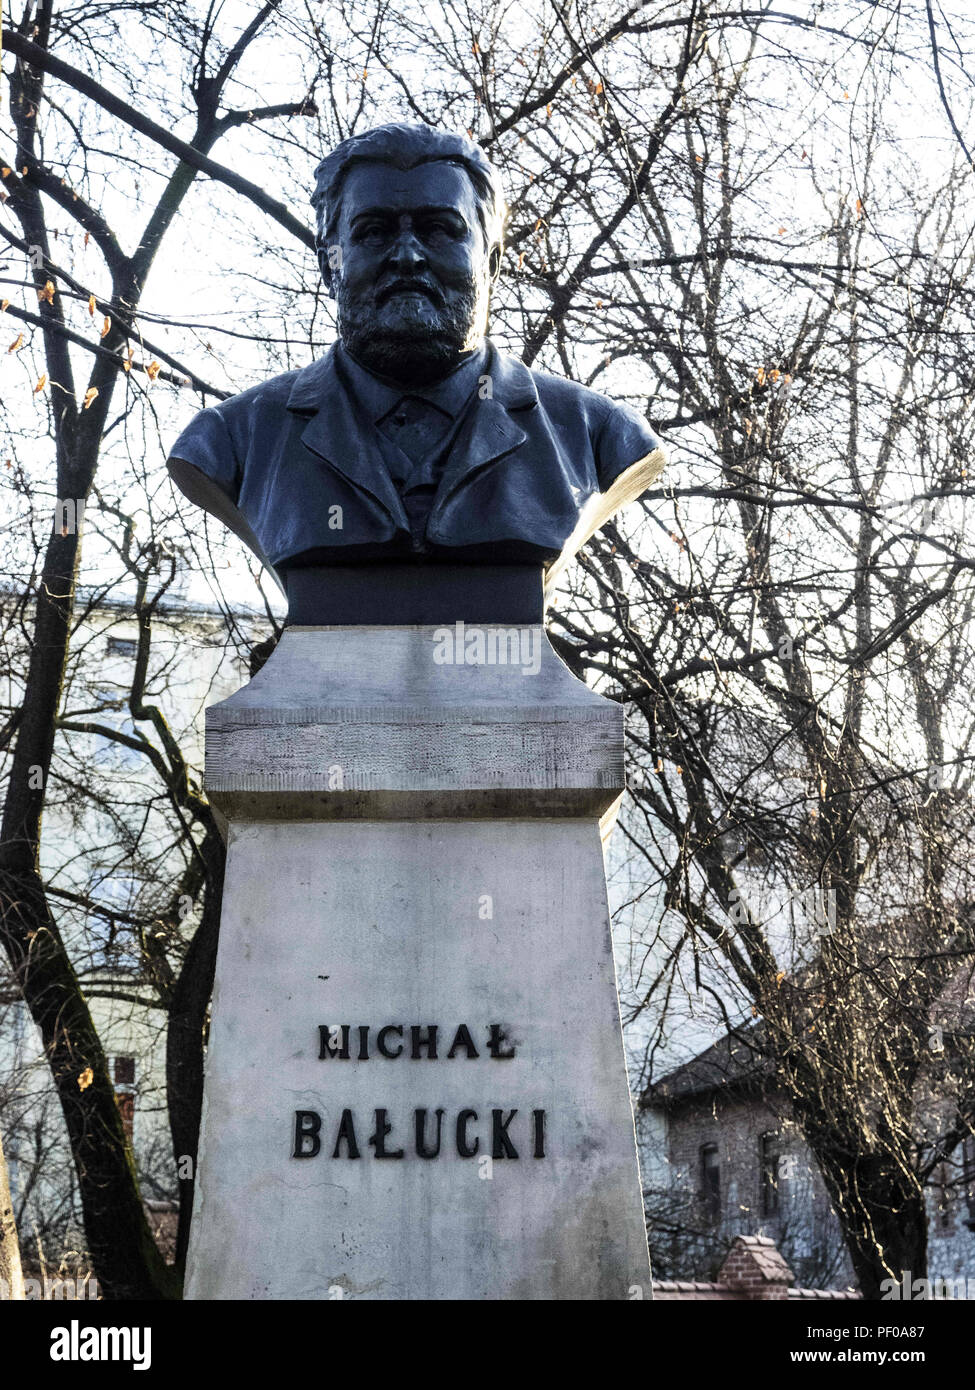 Krakow, Poland. 22nd Mar, 2018. Monument of Mihal Balucki. Mihal Balucki was a Polish playwright and poet.The city of Krakow is located in southern Poland and it is the second largest city in terms of population in Poland, in 2017 it had a population of over 760,000. Credit: Igor Golovniov/SOPA Images/ZUMA Wire/Alamy Live News Stock Photo